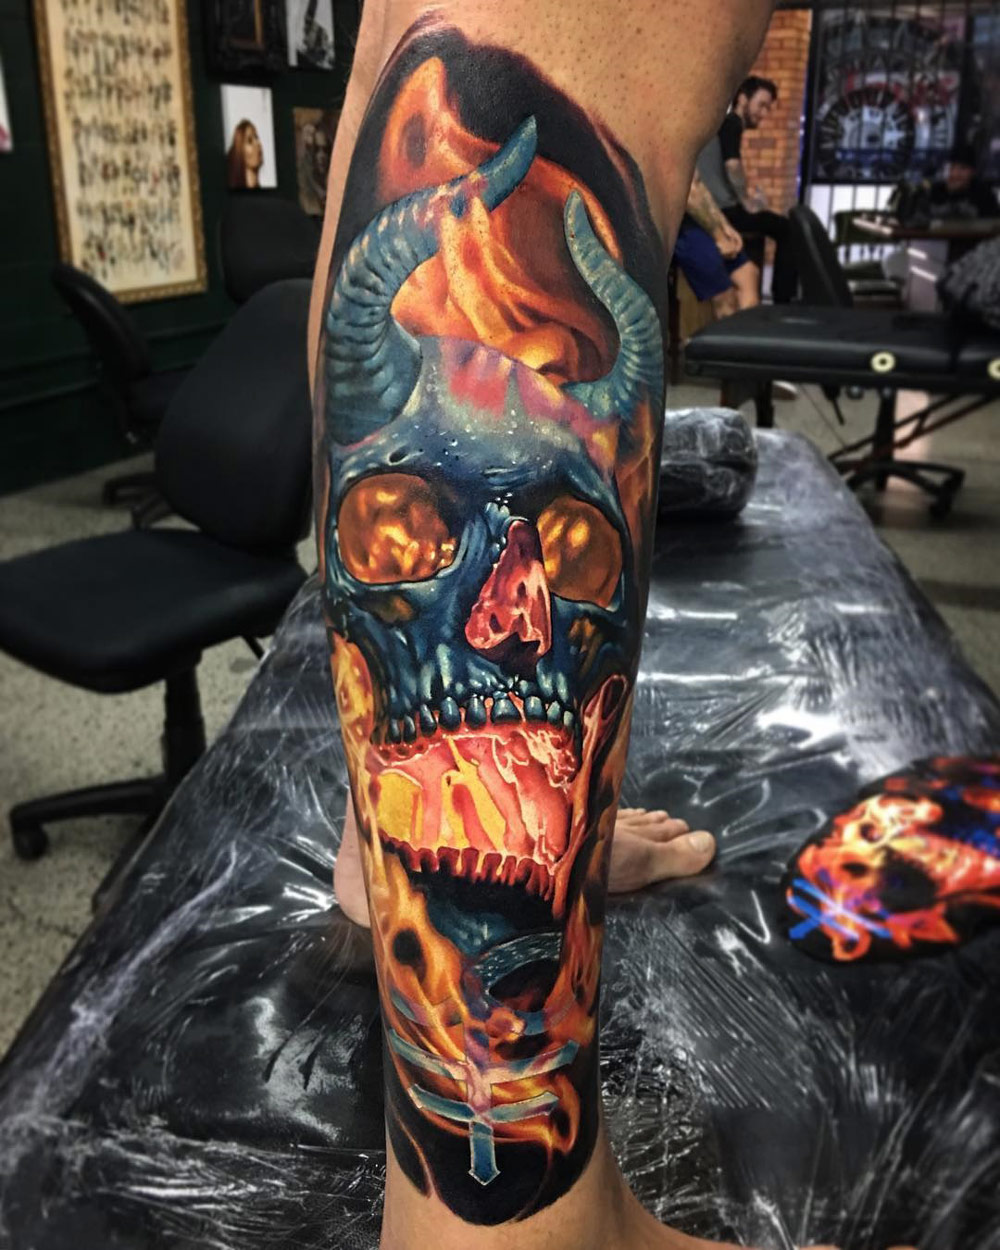 Tattoo Woman Demonic: Demon Skull Tattoo, Flaming With Horns